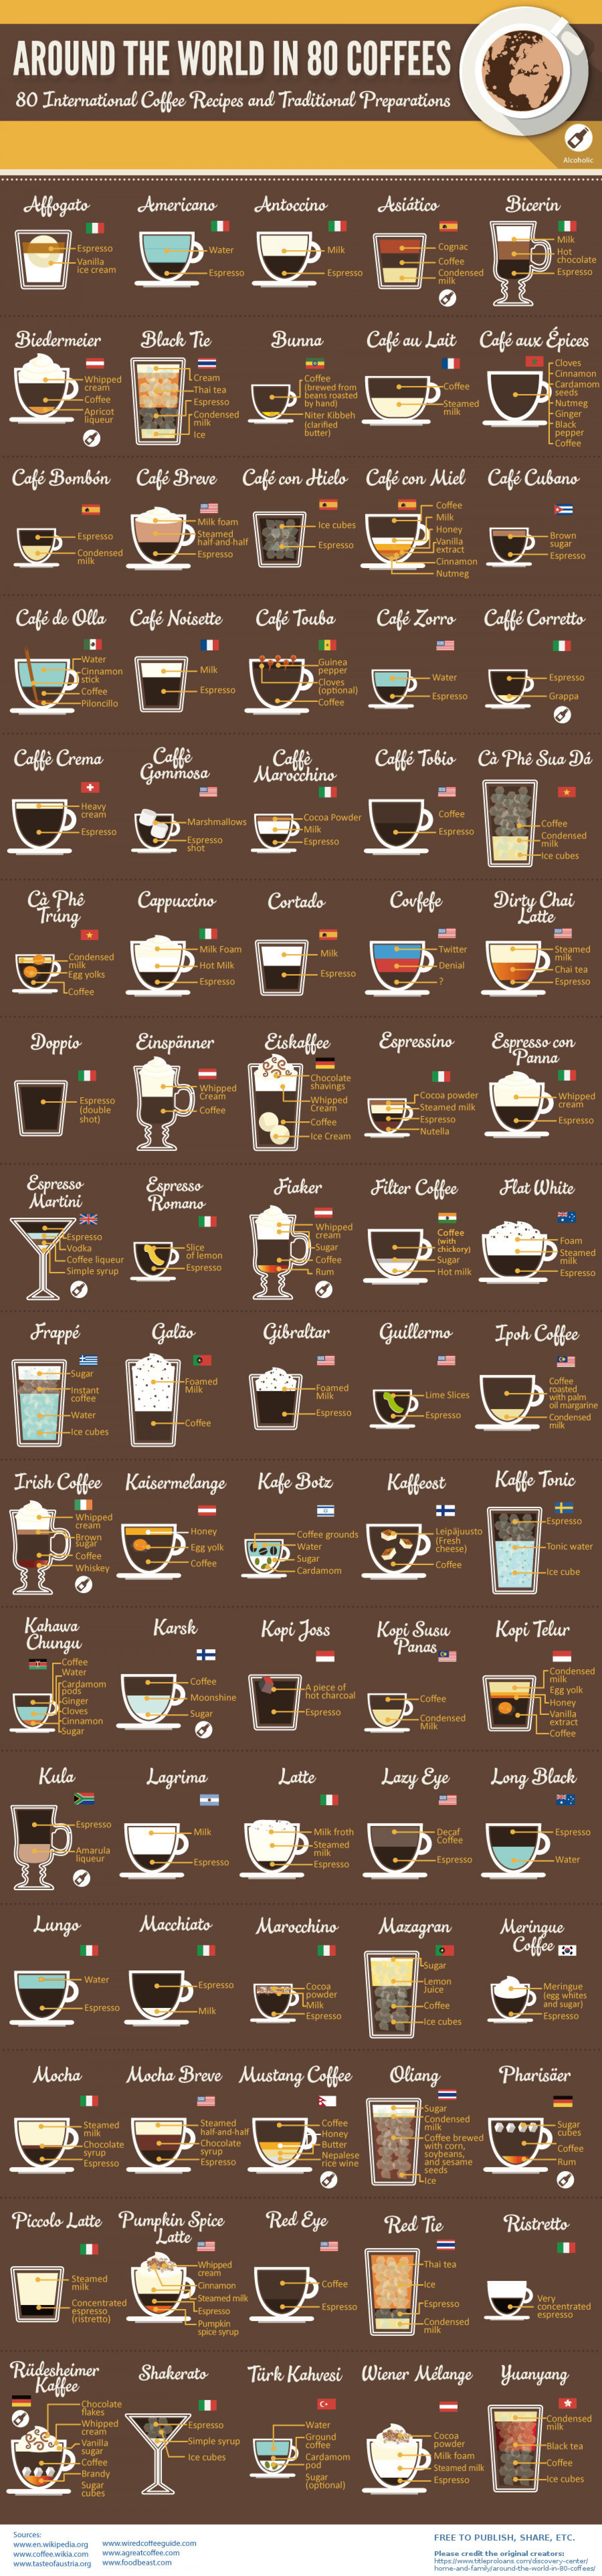 Around the World in 80 Coffees Infographic